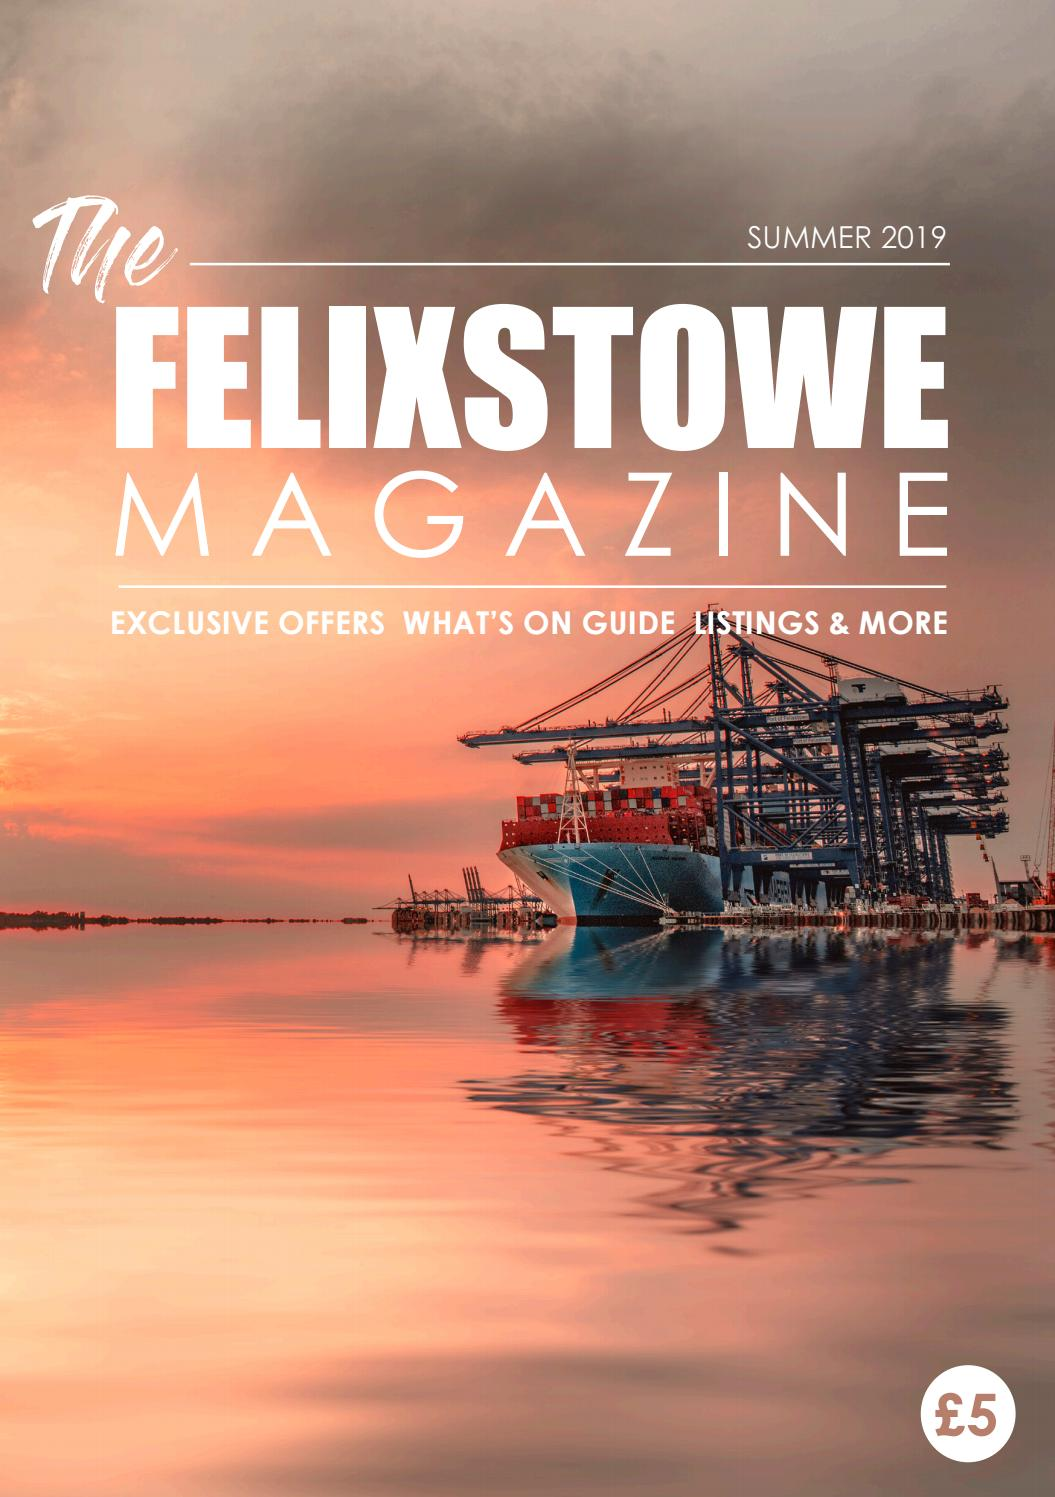 The Felixstowe Magazine Summer 2019 By Birdy Publications